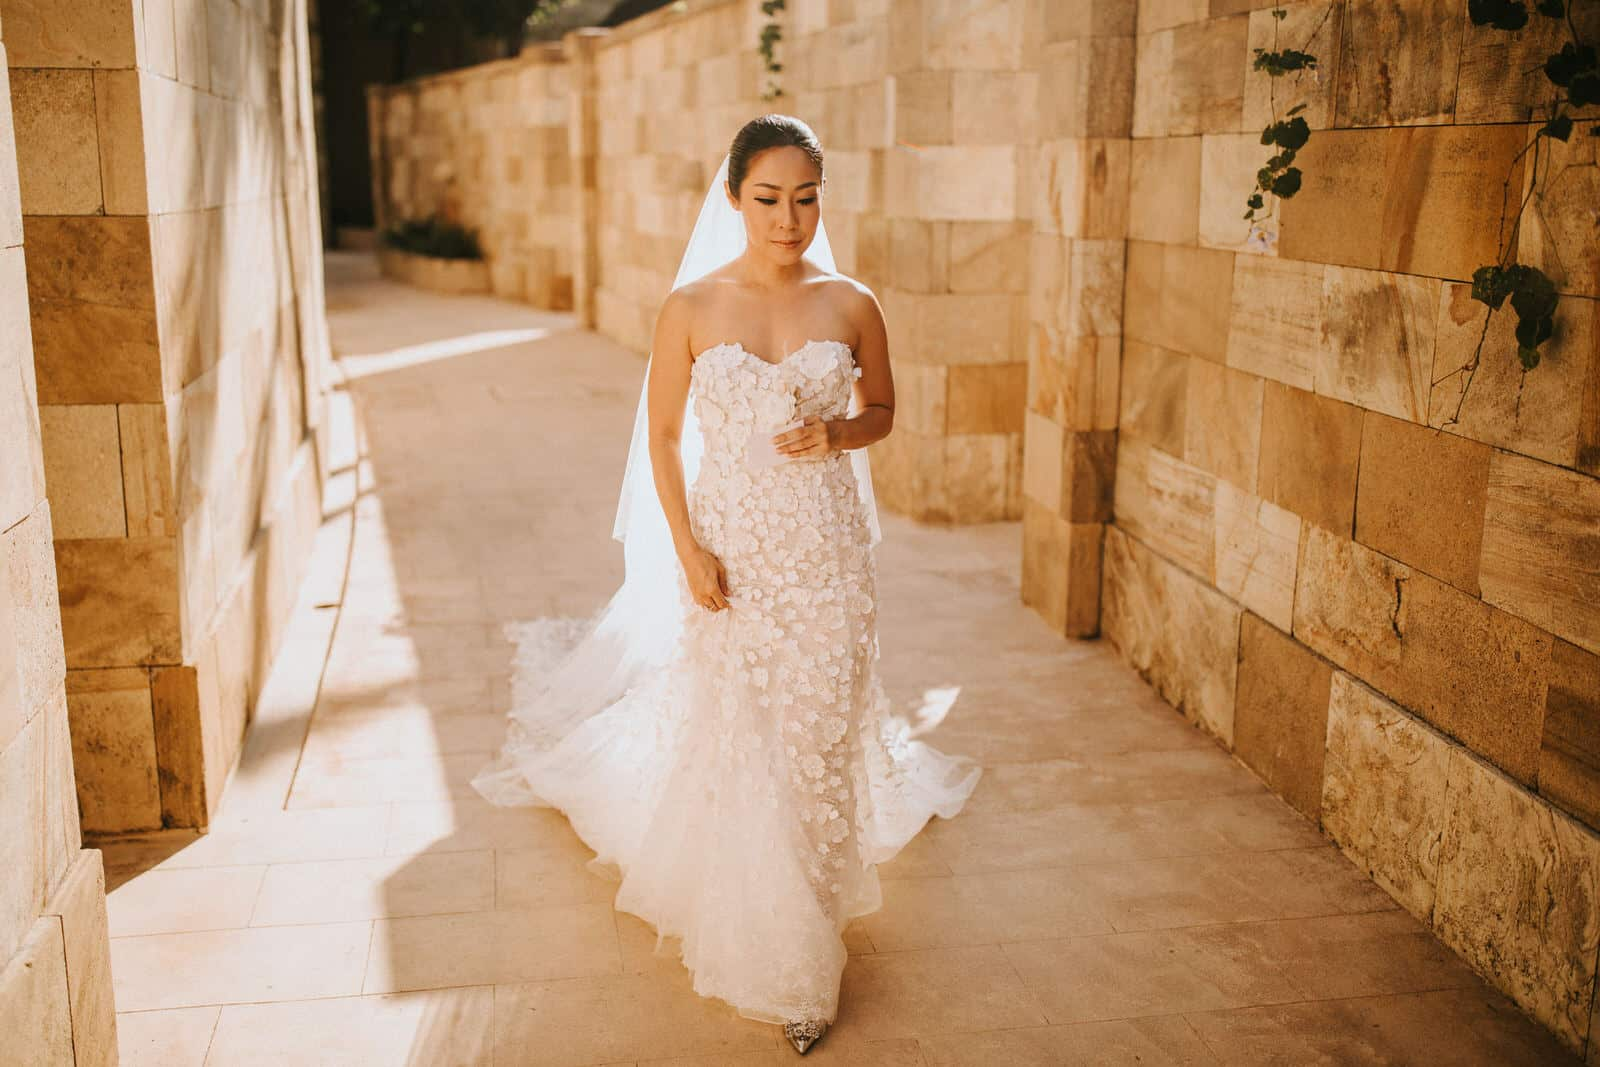 The bride is walking down an outdoor hallway.